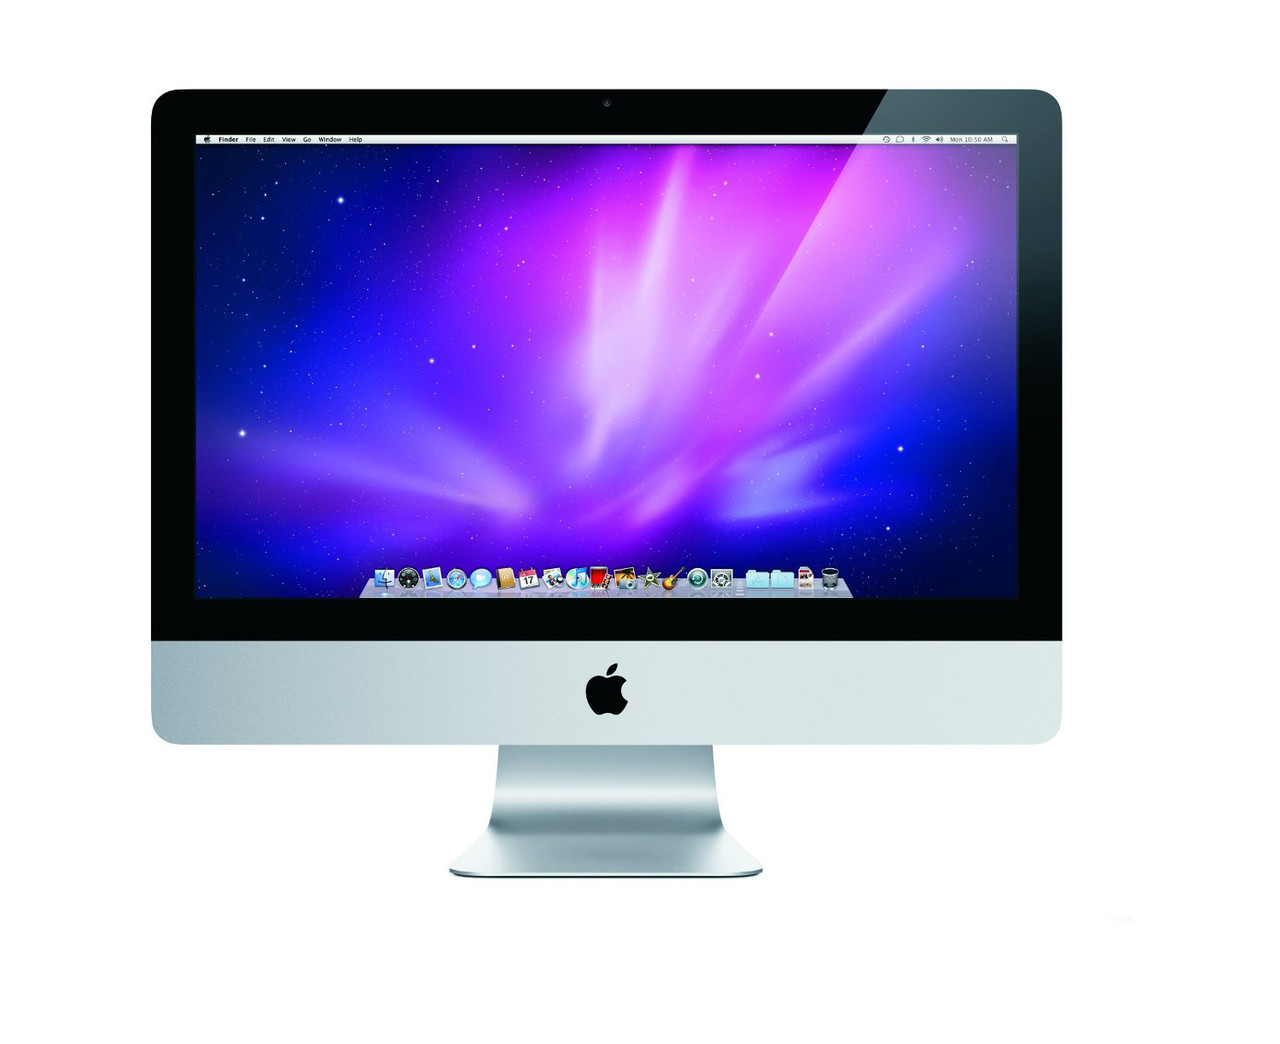 Apple-iMac-Core i3-21.5-Inch-A1311-front view